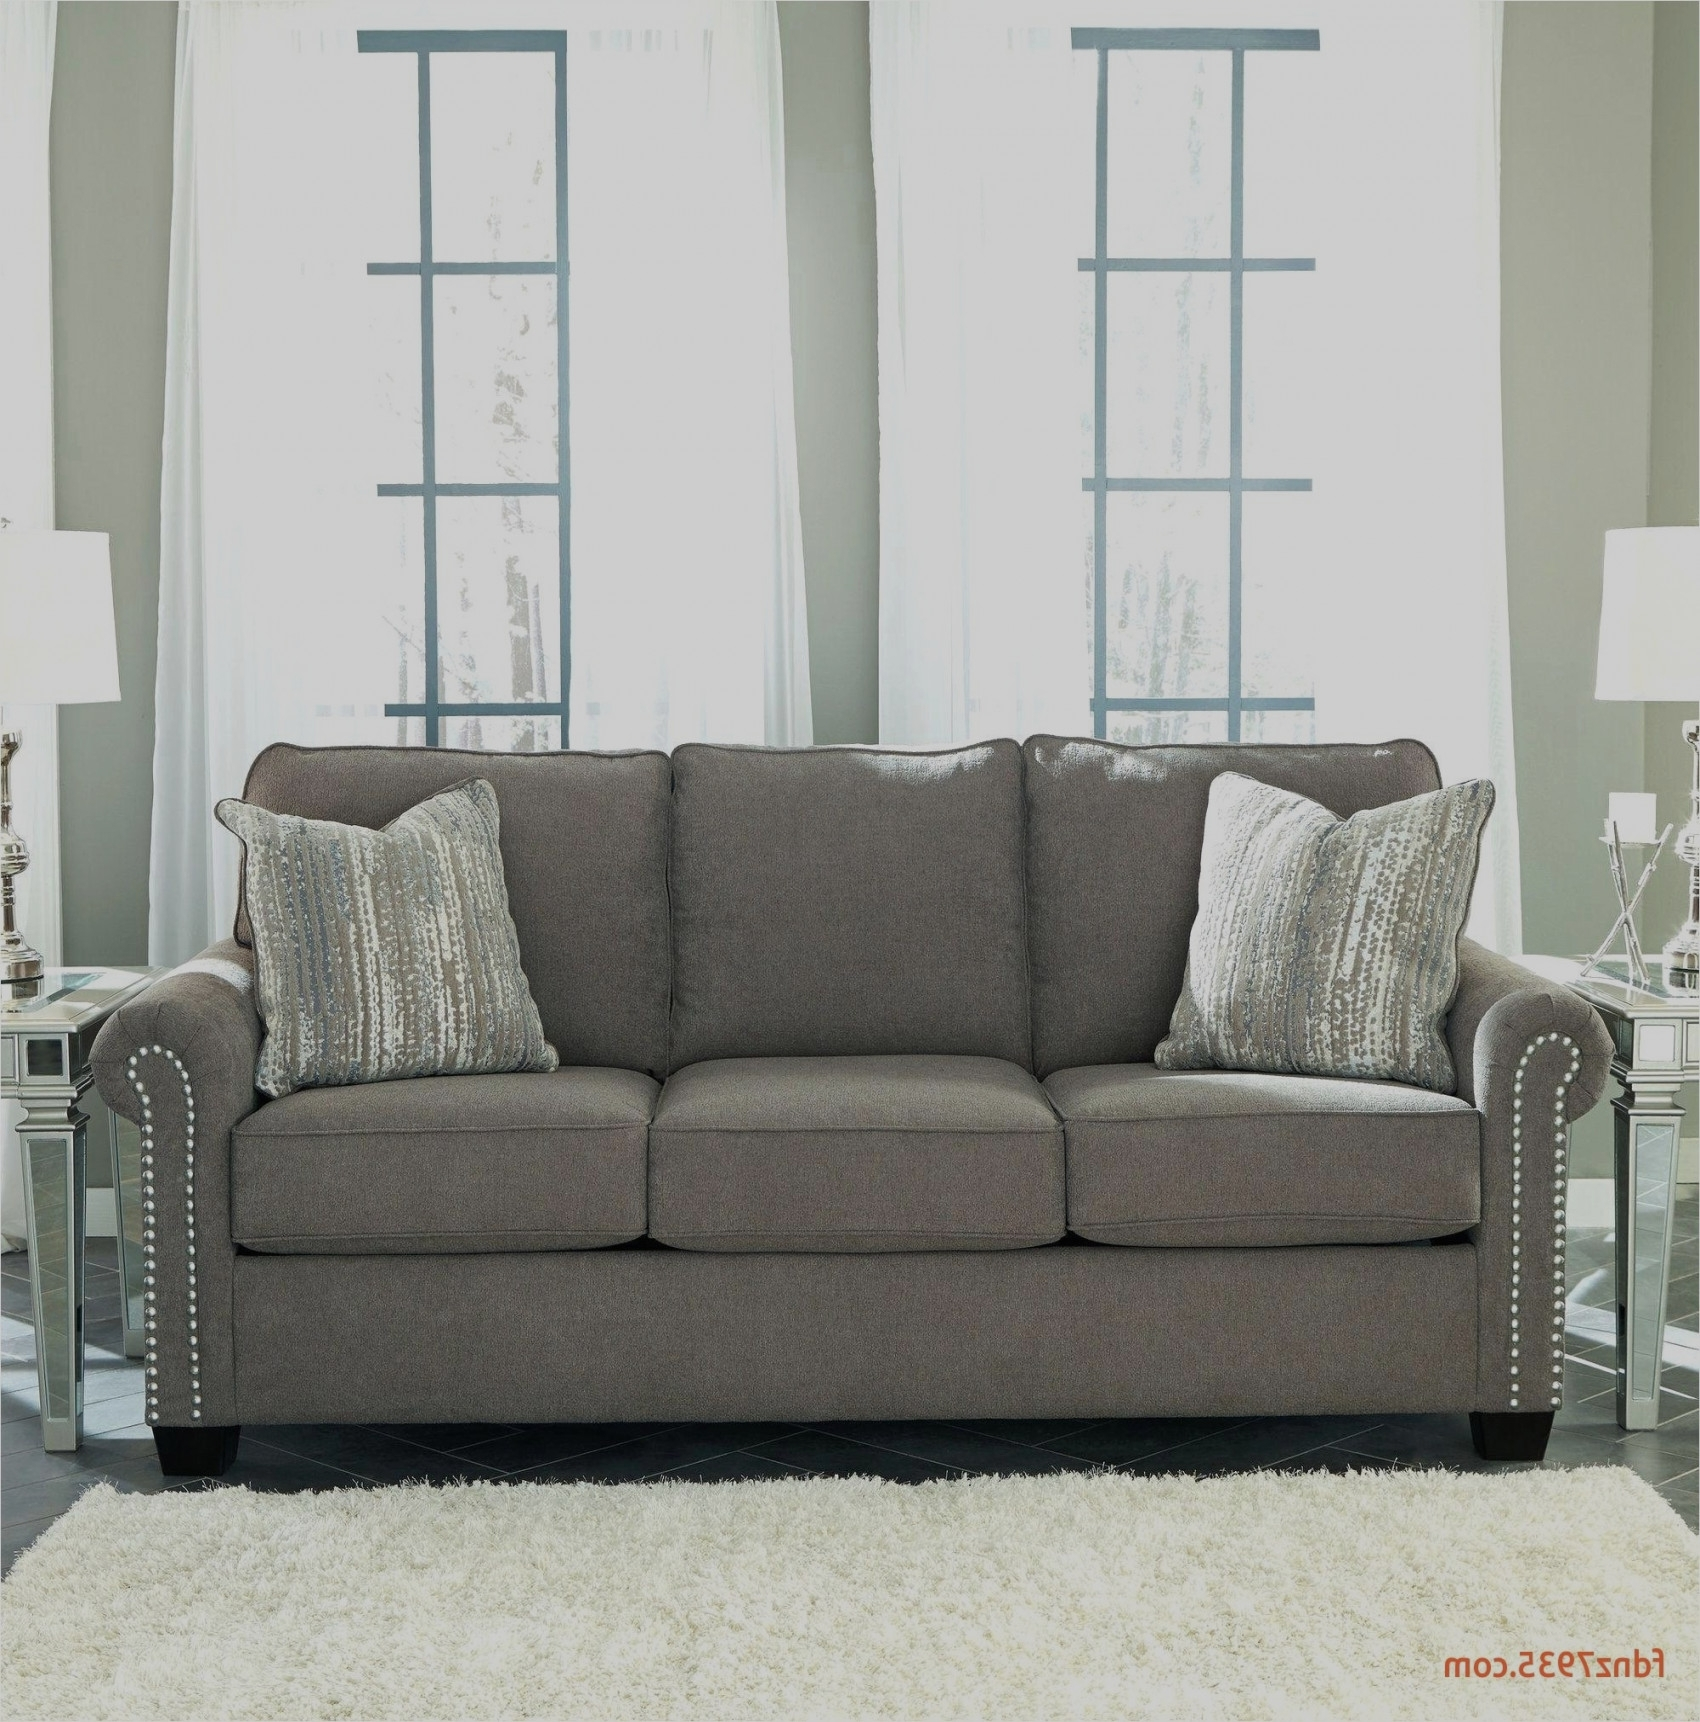 16 Oversized Sectional Sofa With Chaise ~ Fresh Home Design Ideas regarding Delano 2 Piece Sectionals With Raf Oversized Chaise (Image 2 of 30)